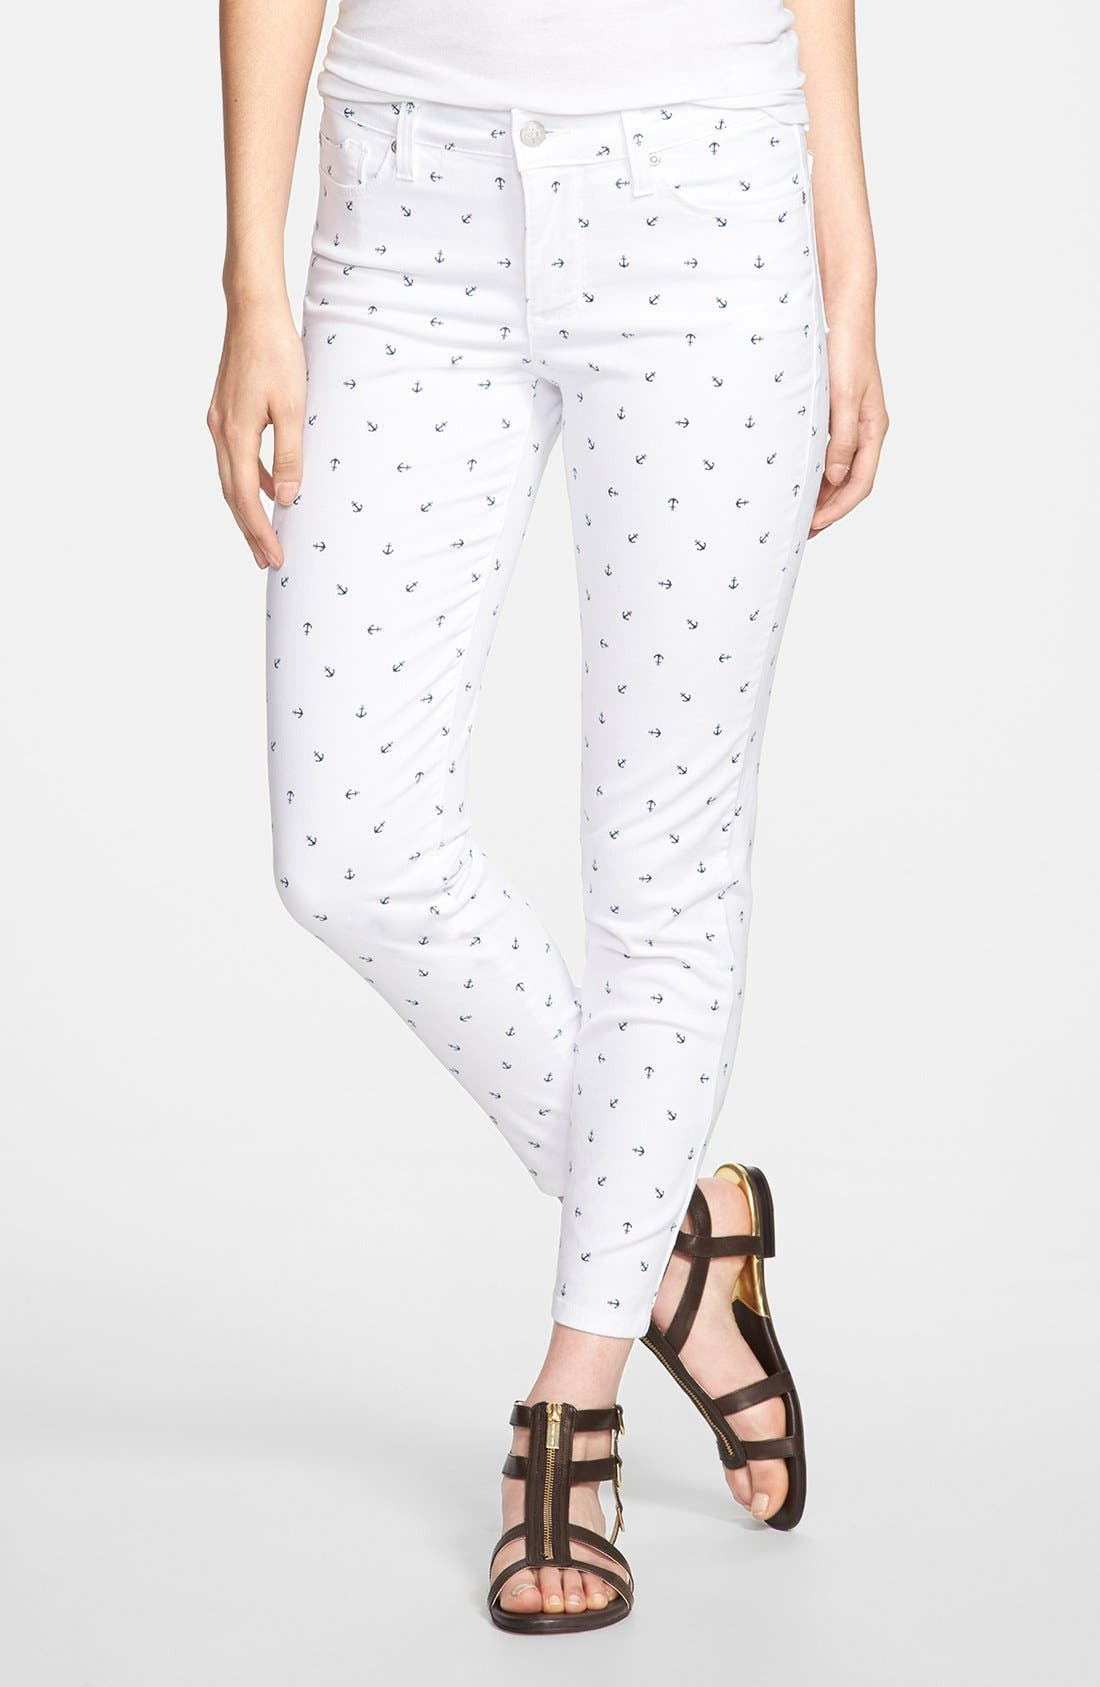 Main Image - NYDJ 'Clarissa' Print Fitted Stretch Ankle Jeans (Optic White Anchors) (Regular & Petite)